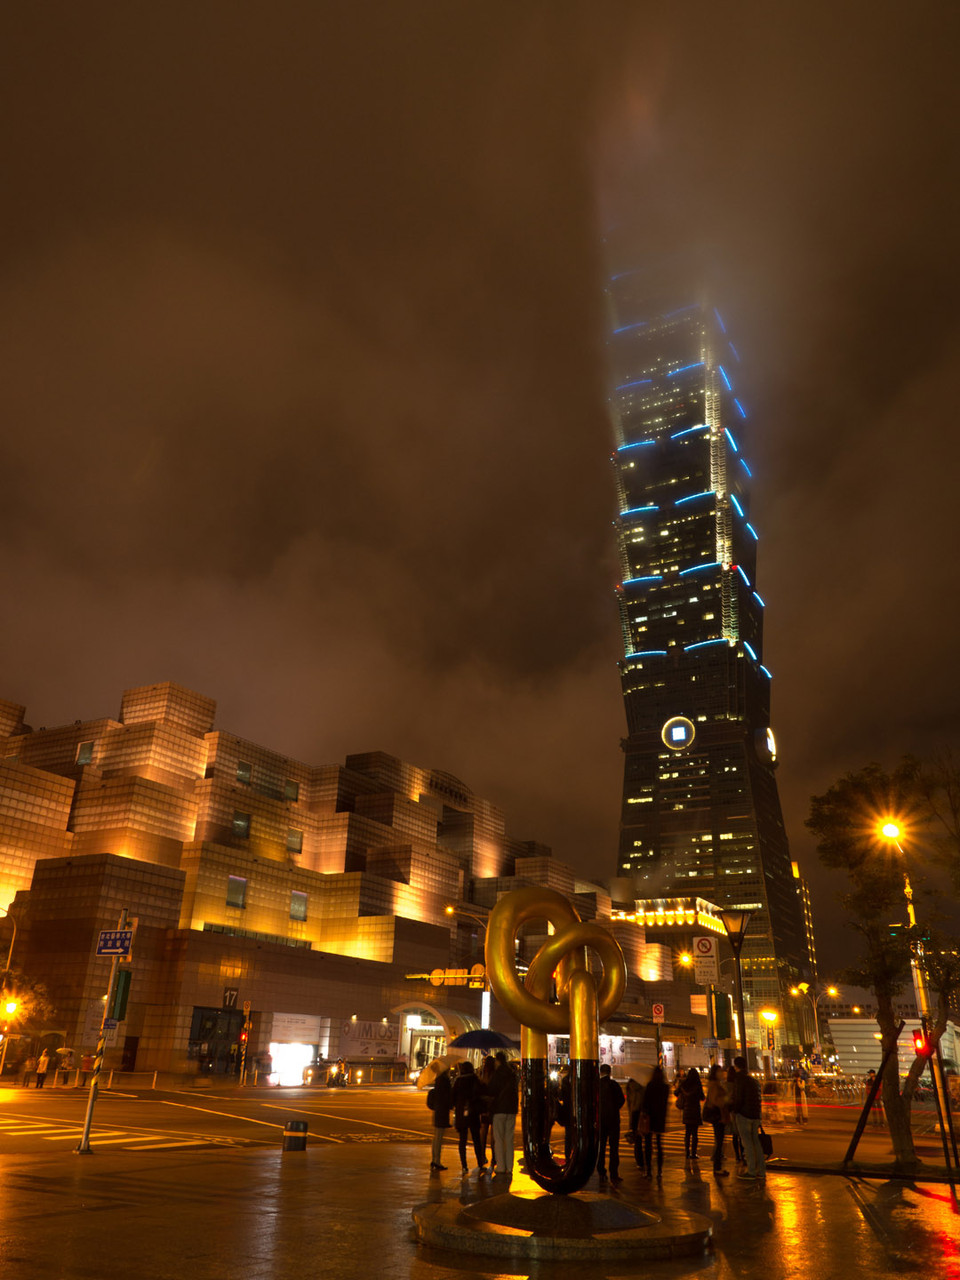 Taipei101 tower during a cloudy night